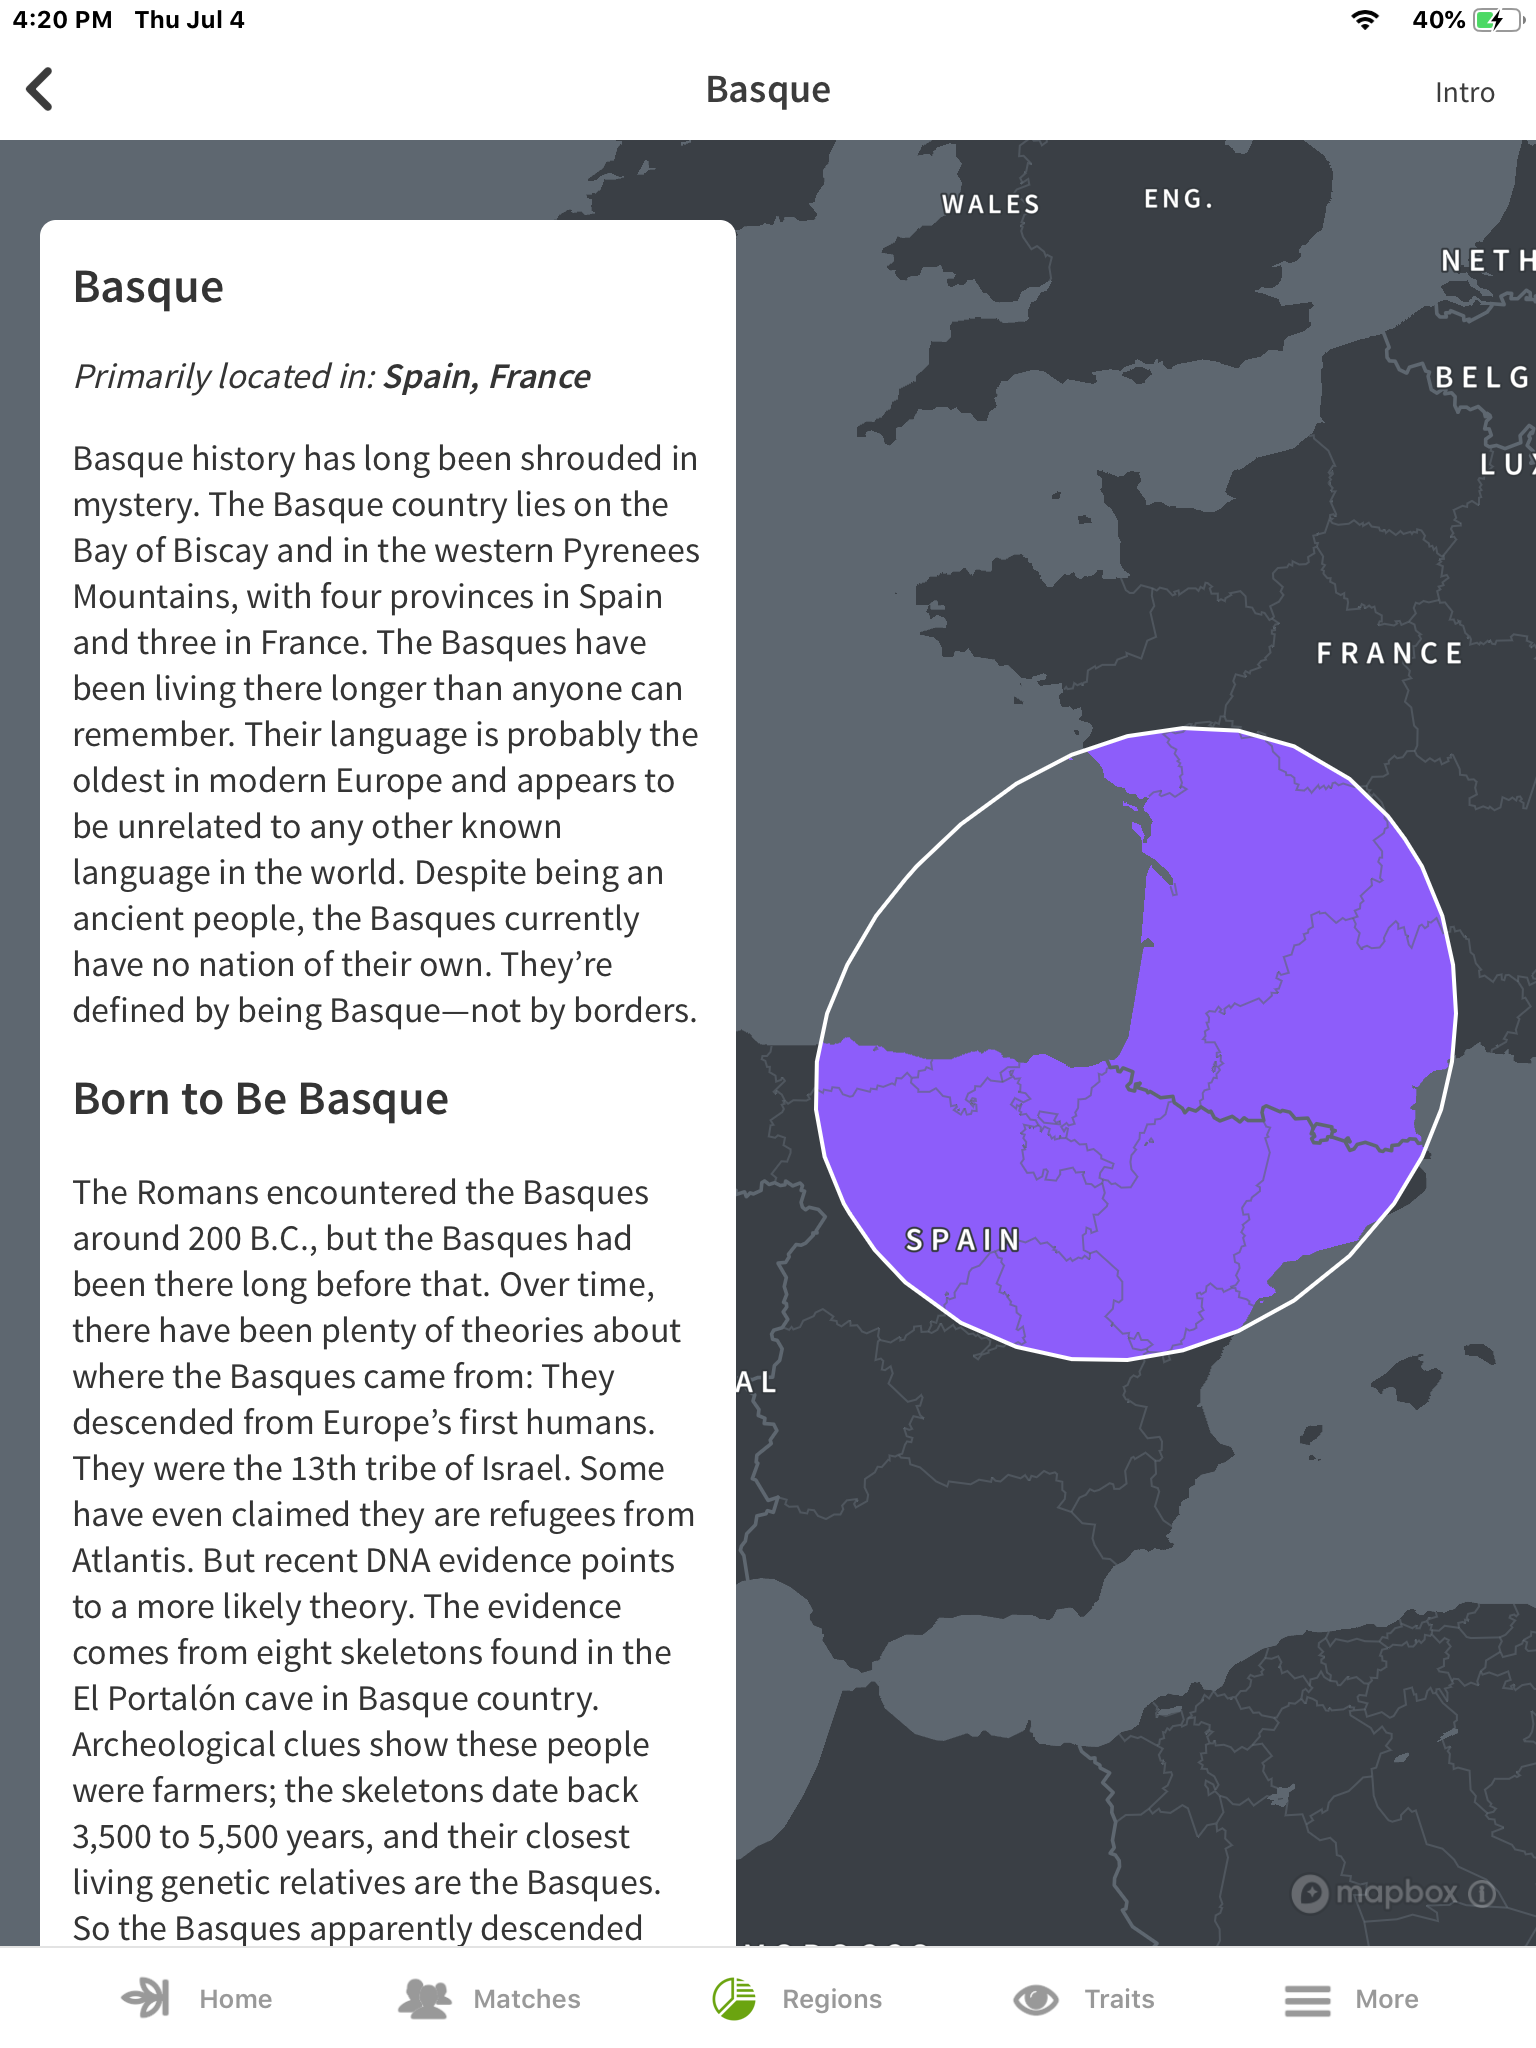 The Basque region of Spain and France from Ancestry.com